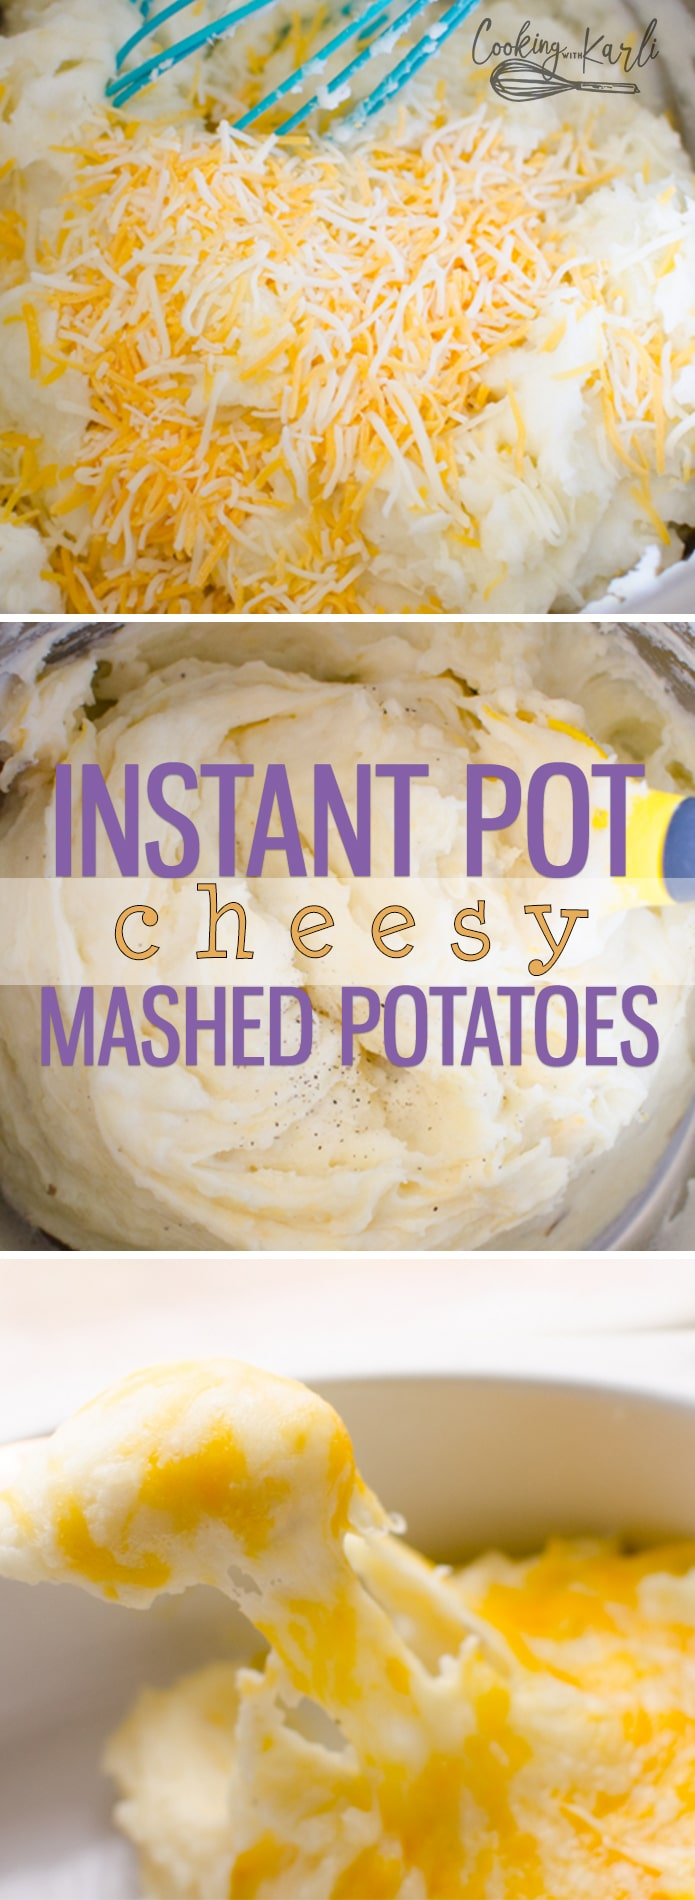 Instant Pot Cheesy Mashed Potatoes recipe is a very classic mashed potato dish. The potato really shines through and is the star in this recipe. The potatoes are pressure cooked for just 2 minutes, making these mashed potatoes the fastest side dish ever!  Cooking with Karli  #instantpot #mashed #potatoes #cheese #recipe #fast